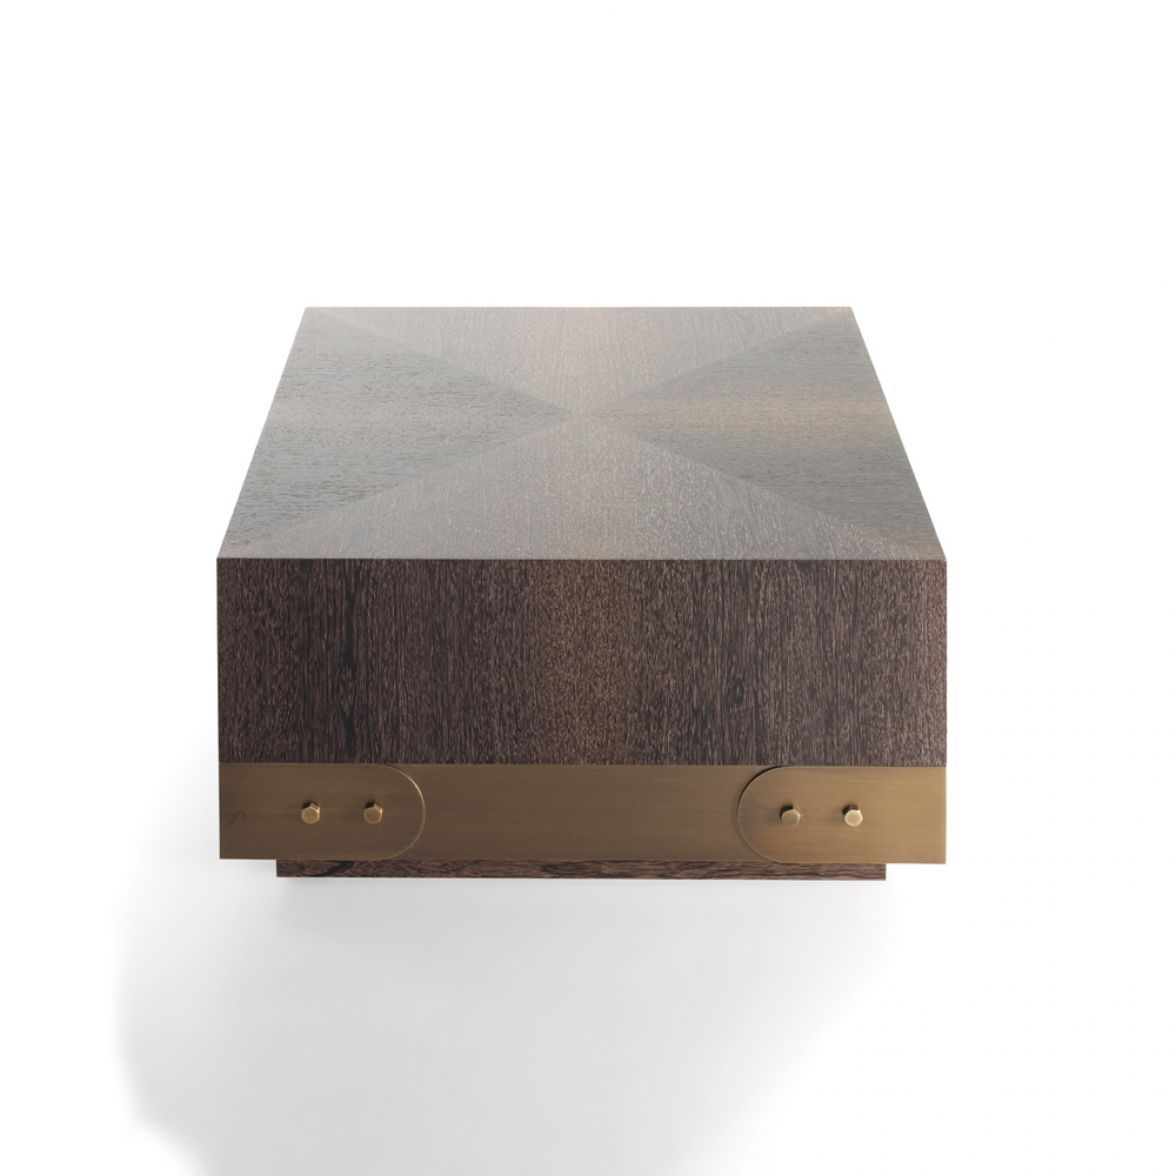 Strapp coffee table